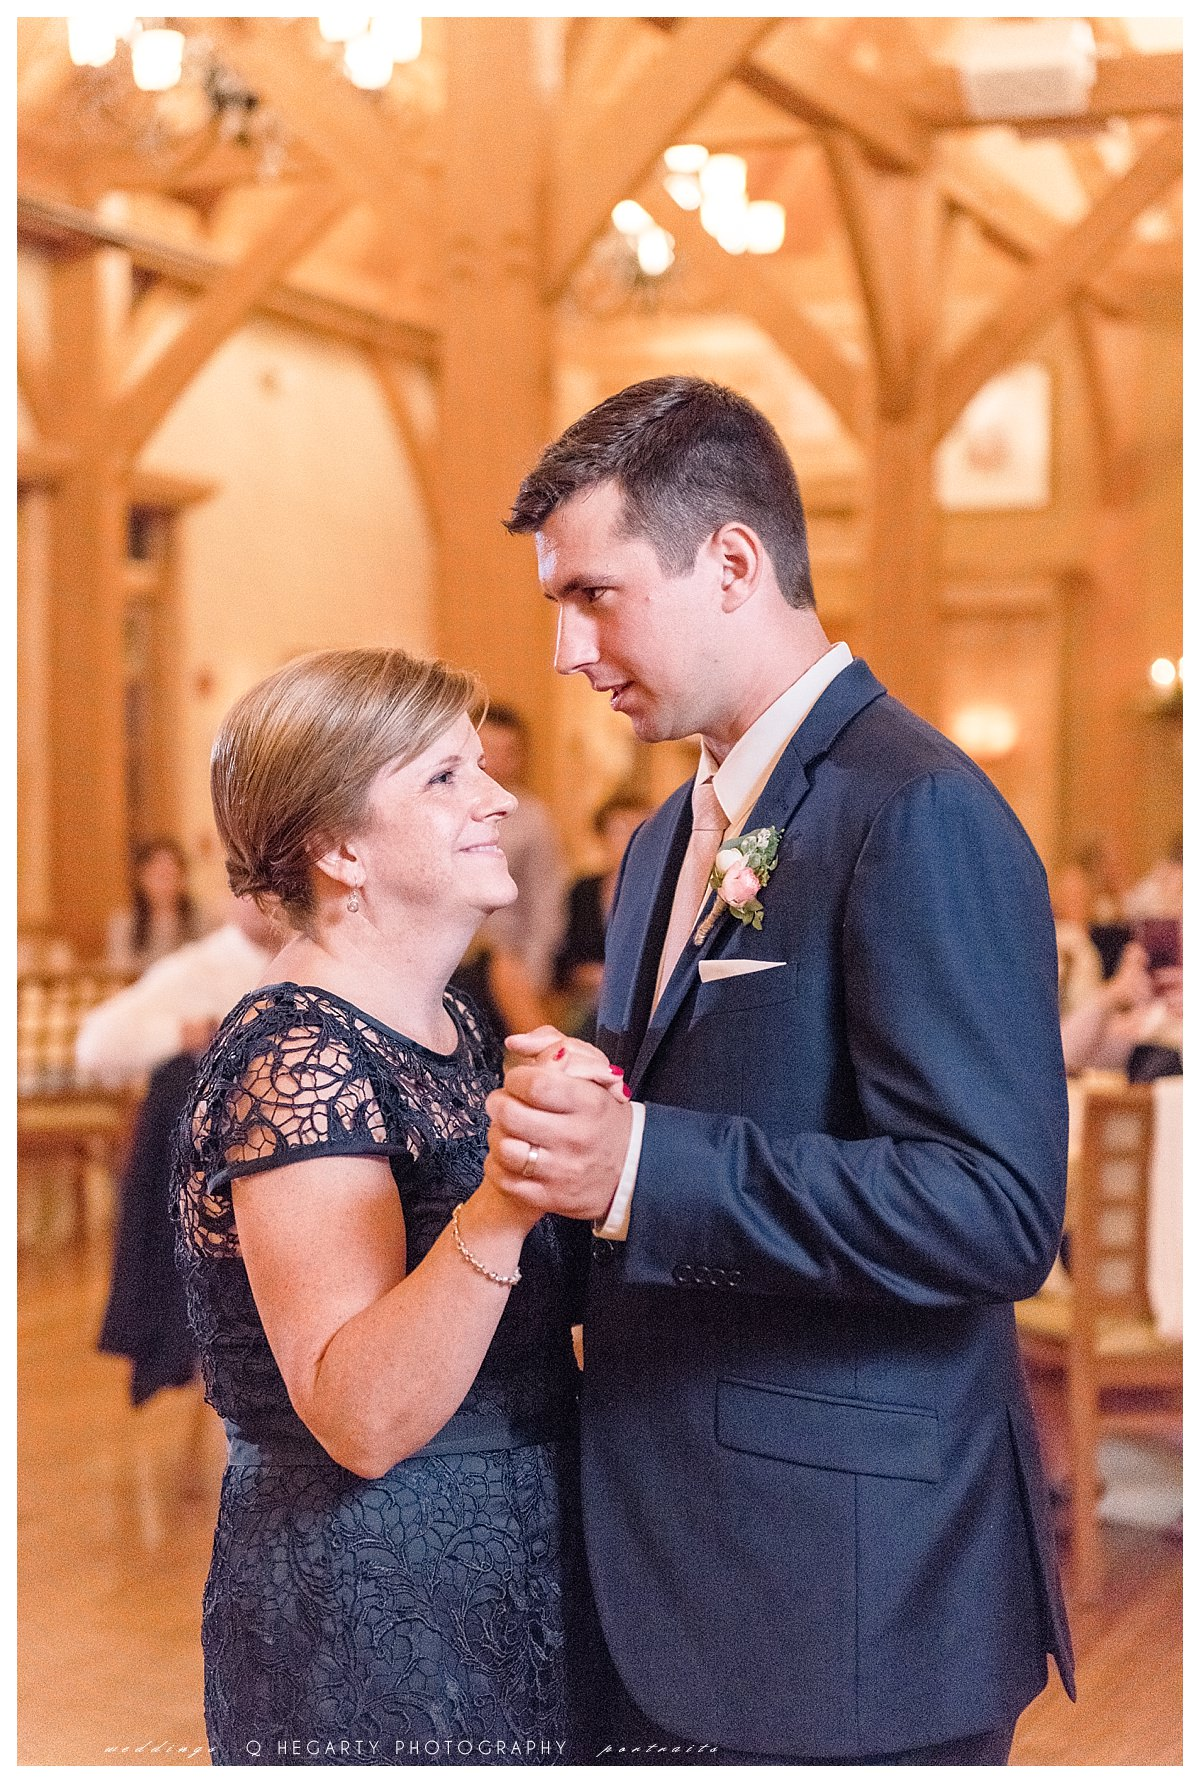 mother and son dance photos at reception Q Hegarty Photography red barn outlook farm wedding in ME